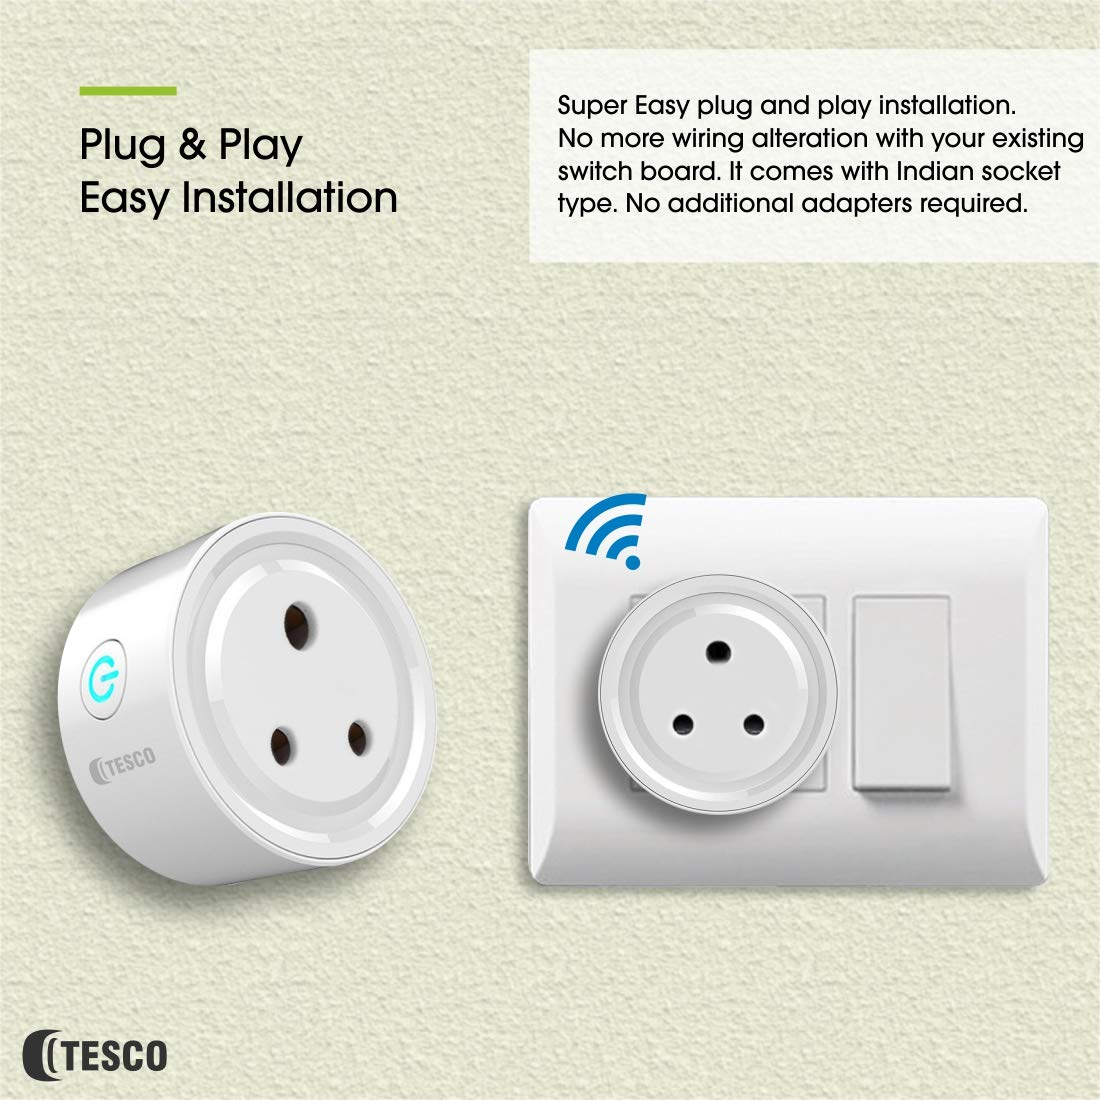 Buy Tesco Smart Wifi Mini Plug Fire Retardant Plastic Socket Switch Wiring A Power Board No Adapter Required Indian Online At Low Prices In India